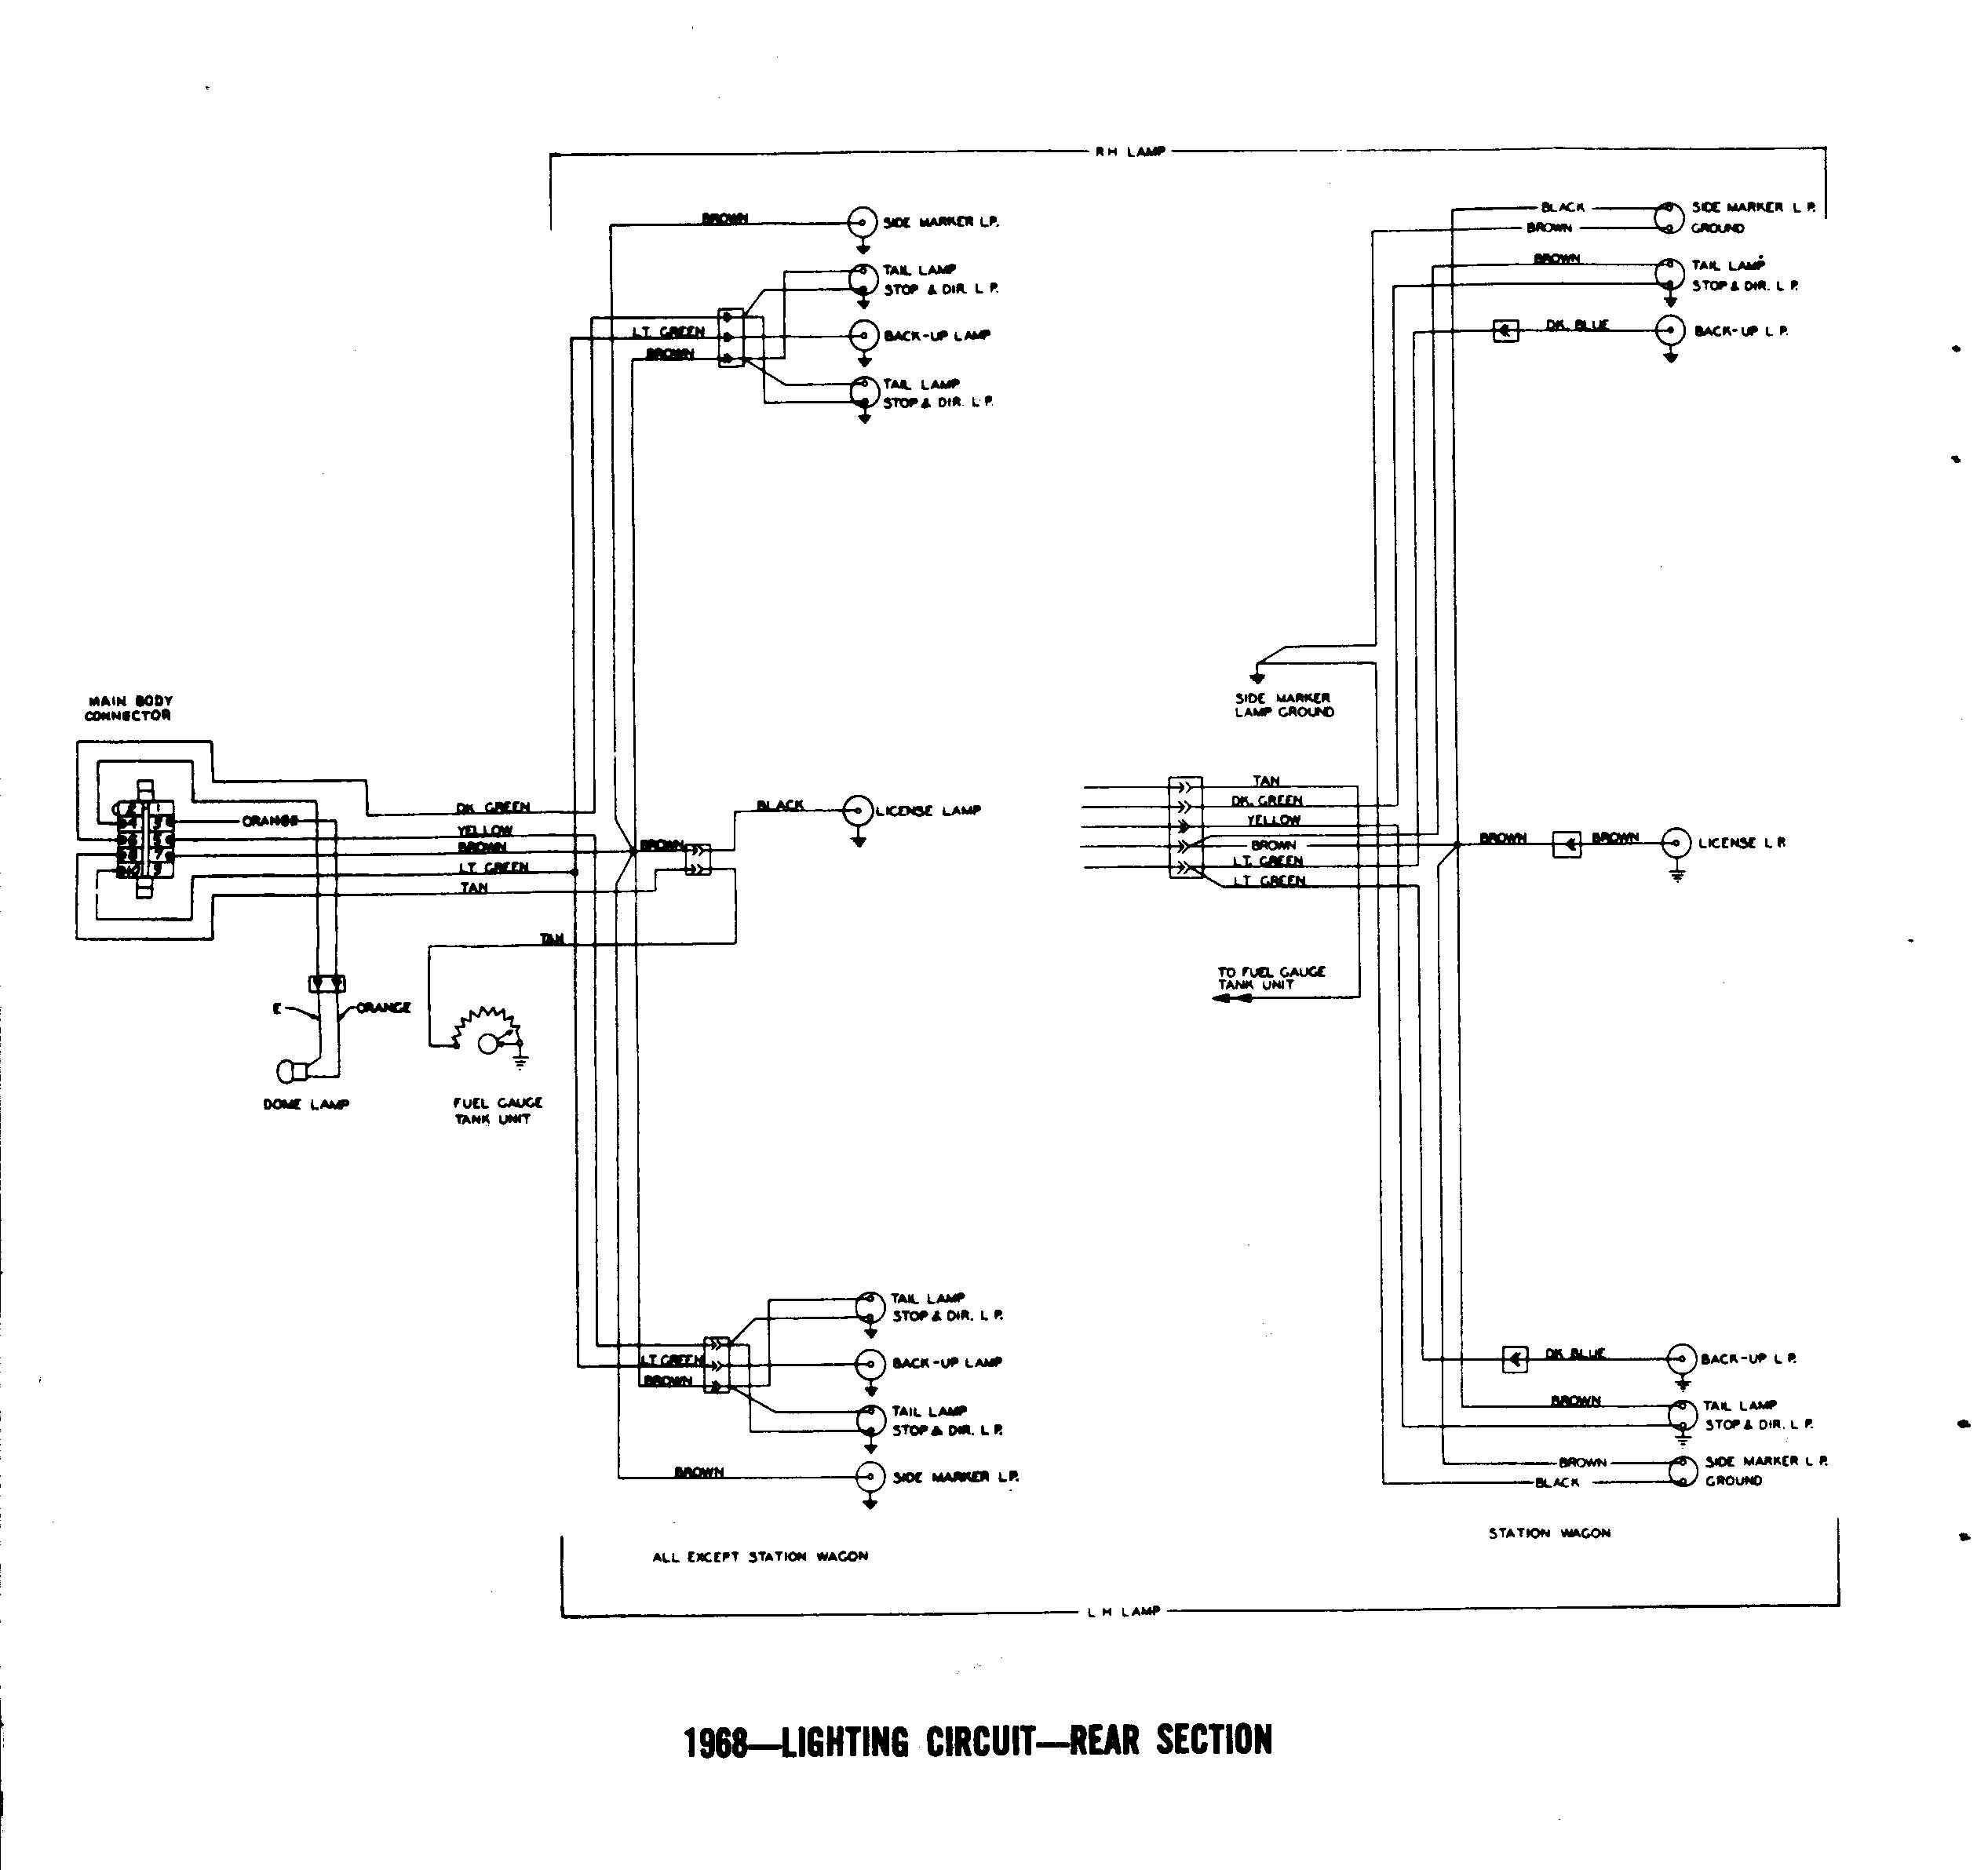 1969 camaro engine wiring diagram 1969 image wiring diagram 69 gto wiring image wiring diagram on 1969 camaro engine wiring diagram